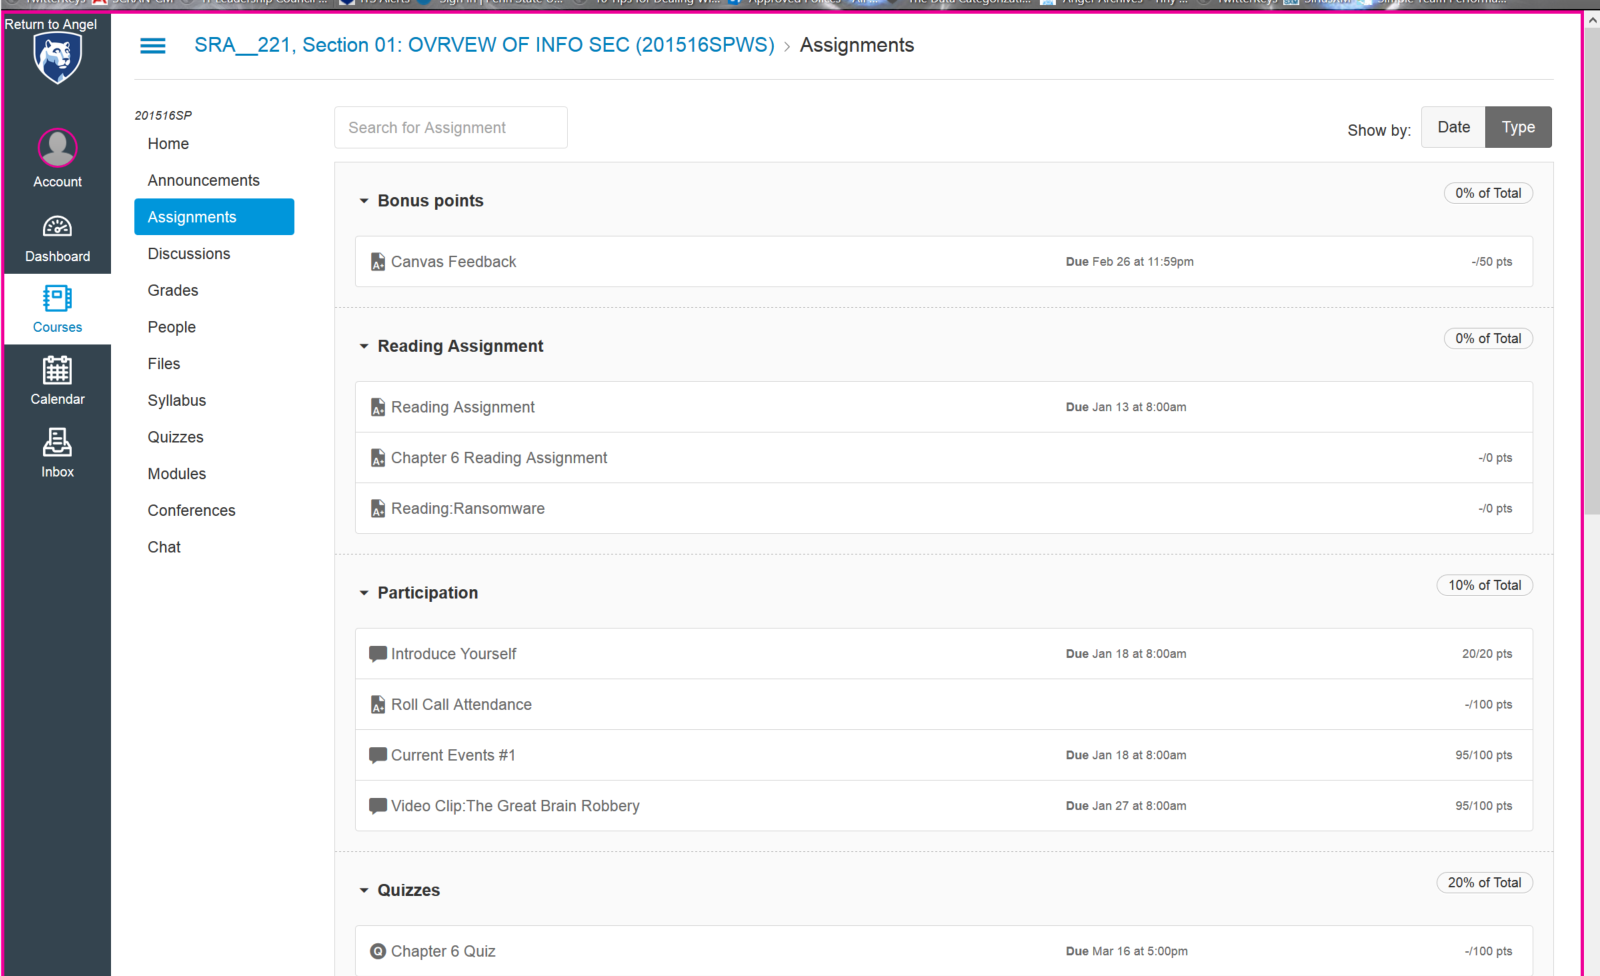 image -- screen shot of assignments sorted by type